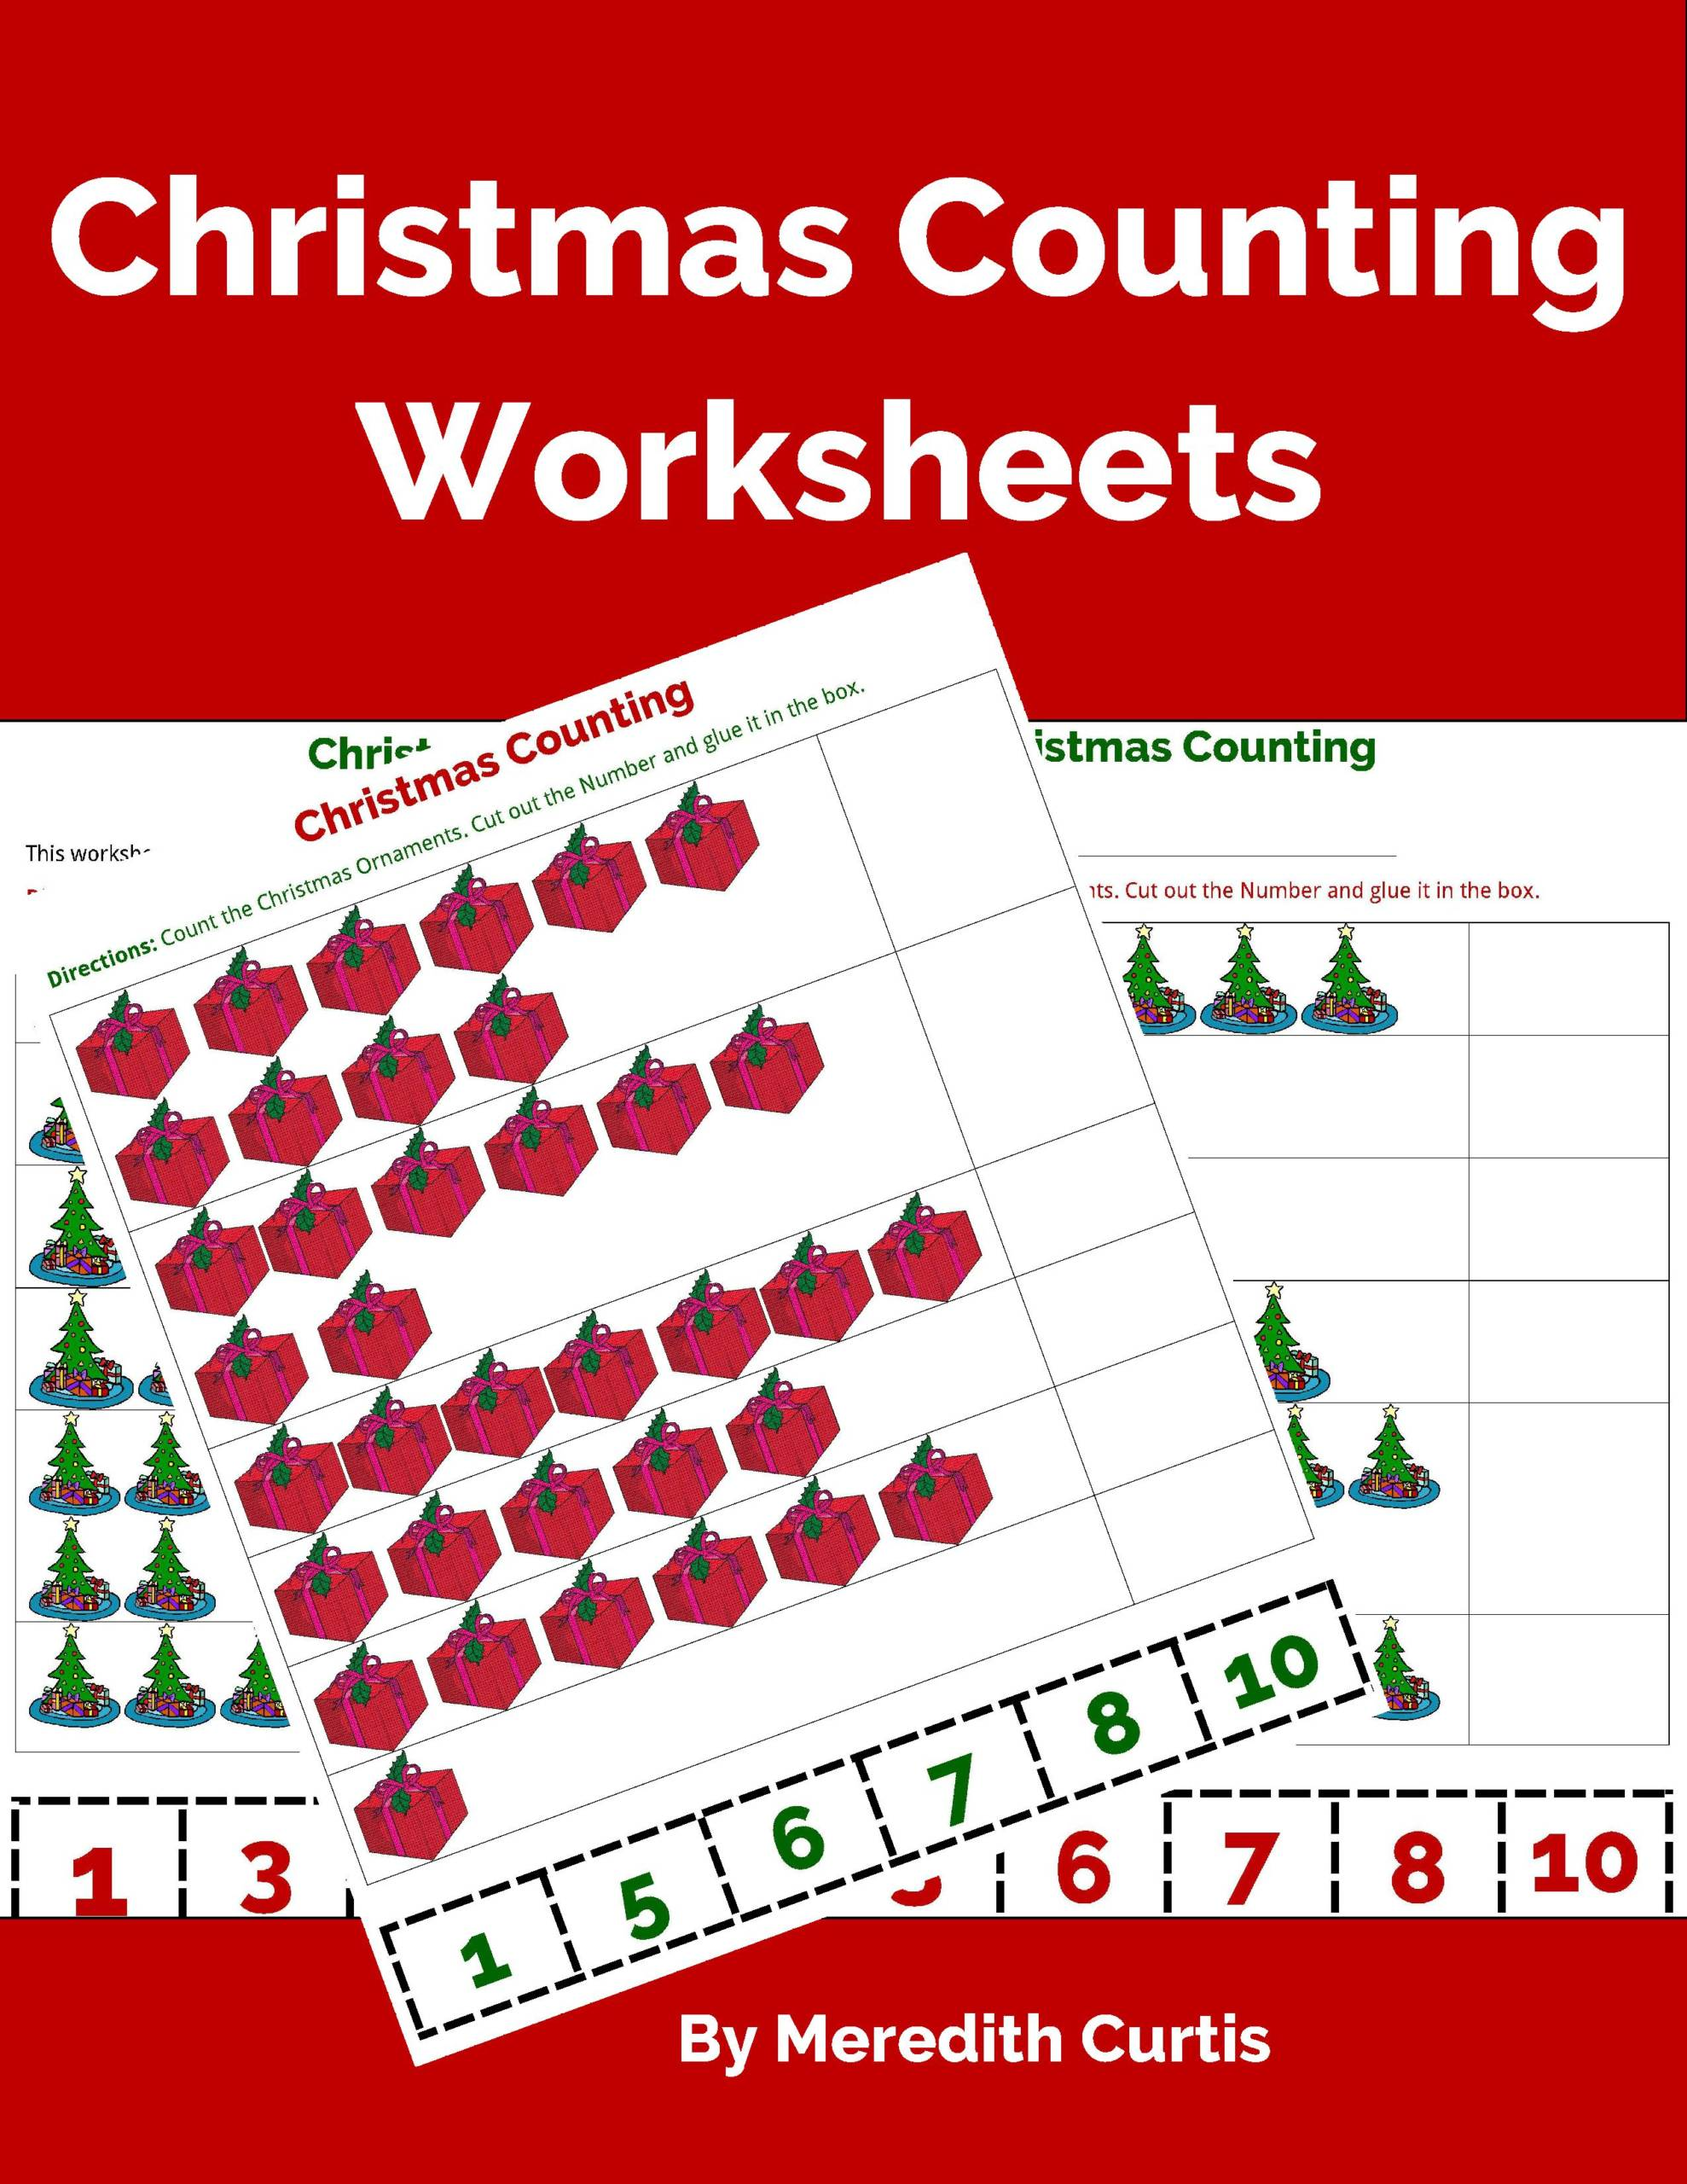 Christmas Counting Worksheets Powerline Productions